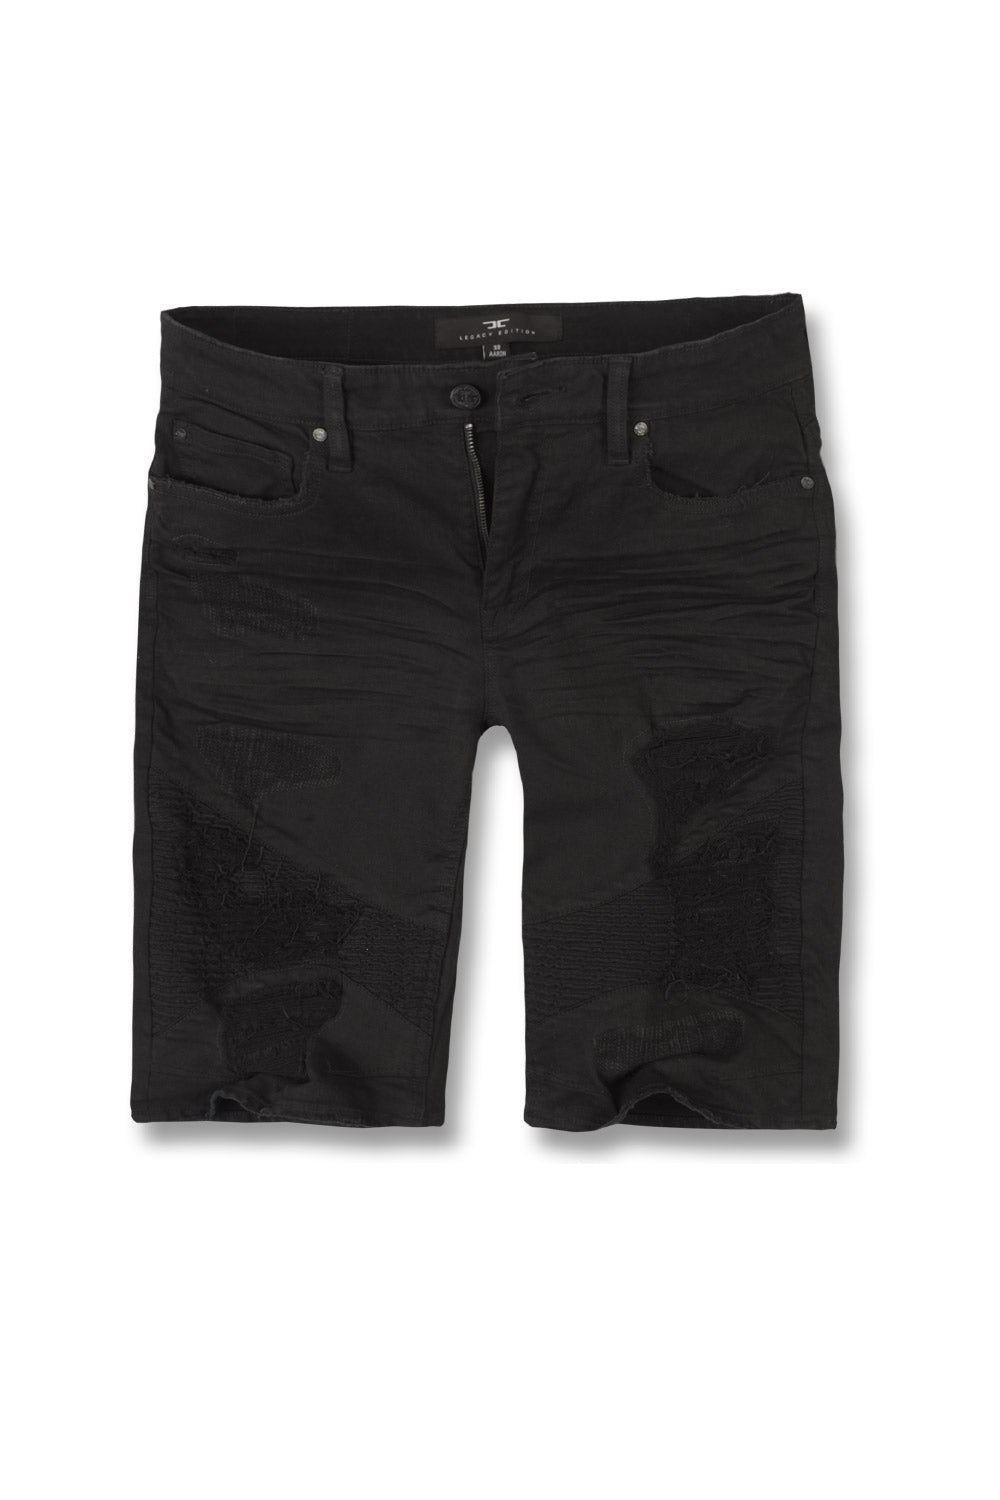 Jordan Craig - Kids Savior Biker Shorts (Black)